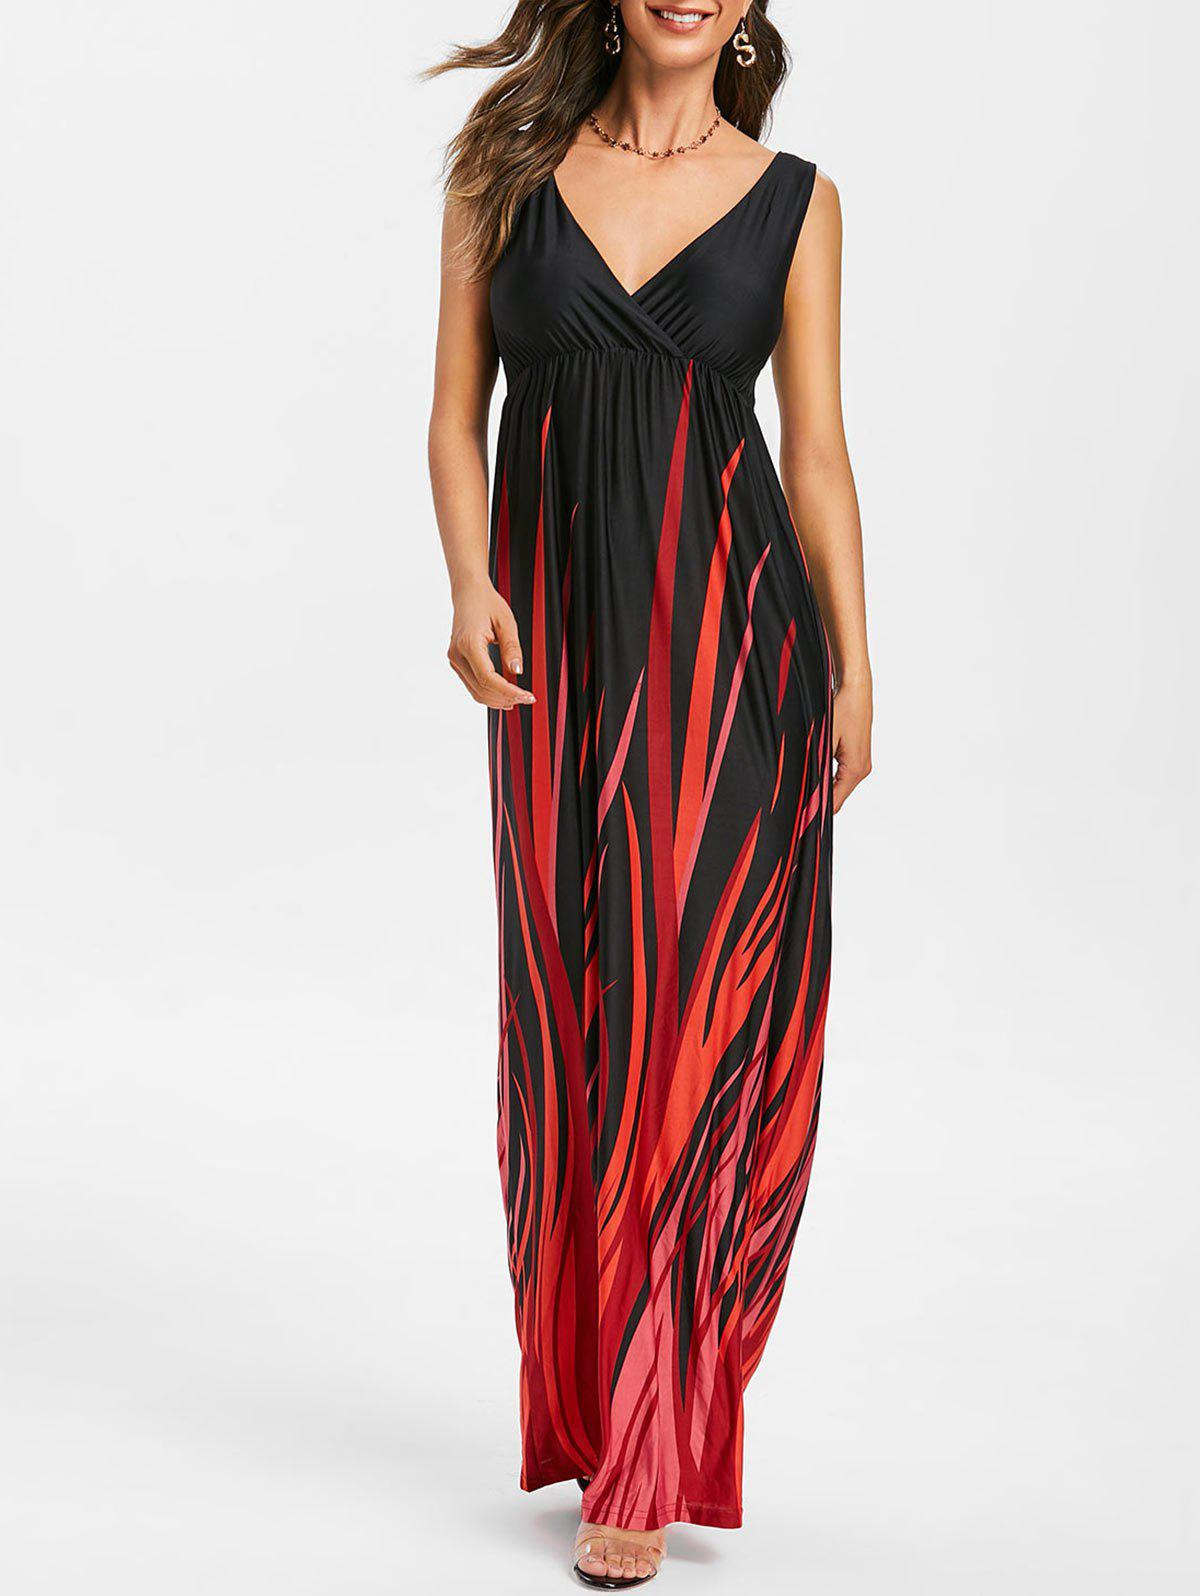 Shops Empire Waist Printed Sleeveless Maxi Dress